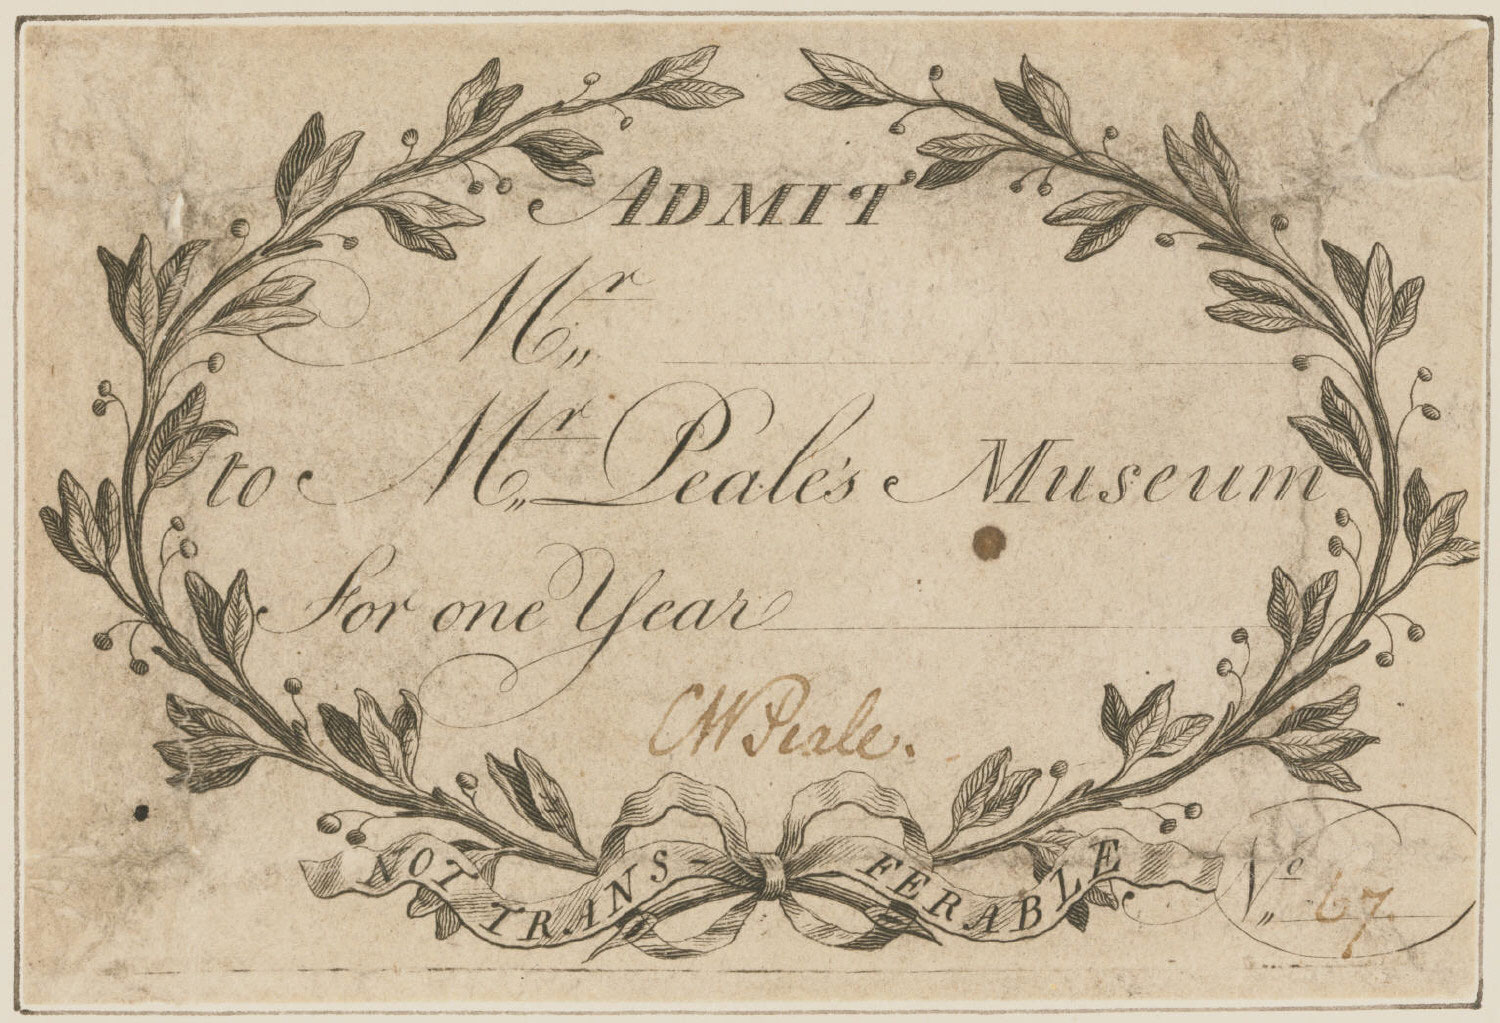 Admission Ticket to Peale's Museum